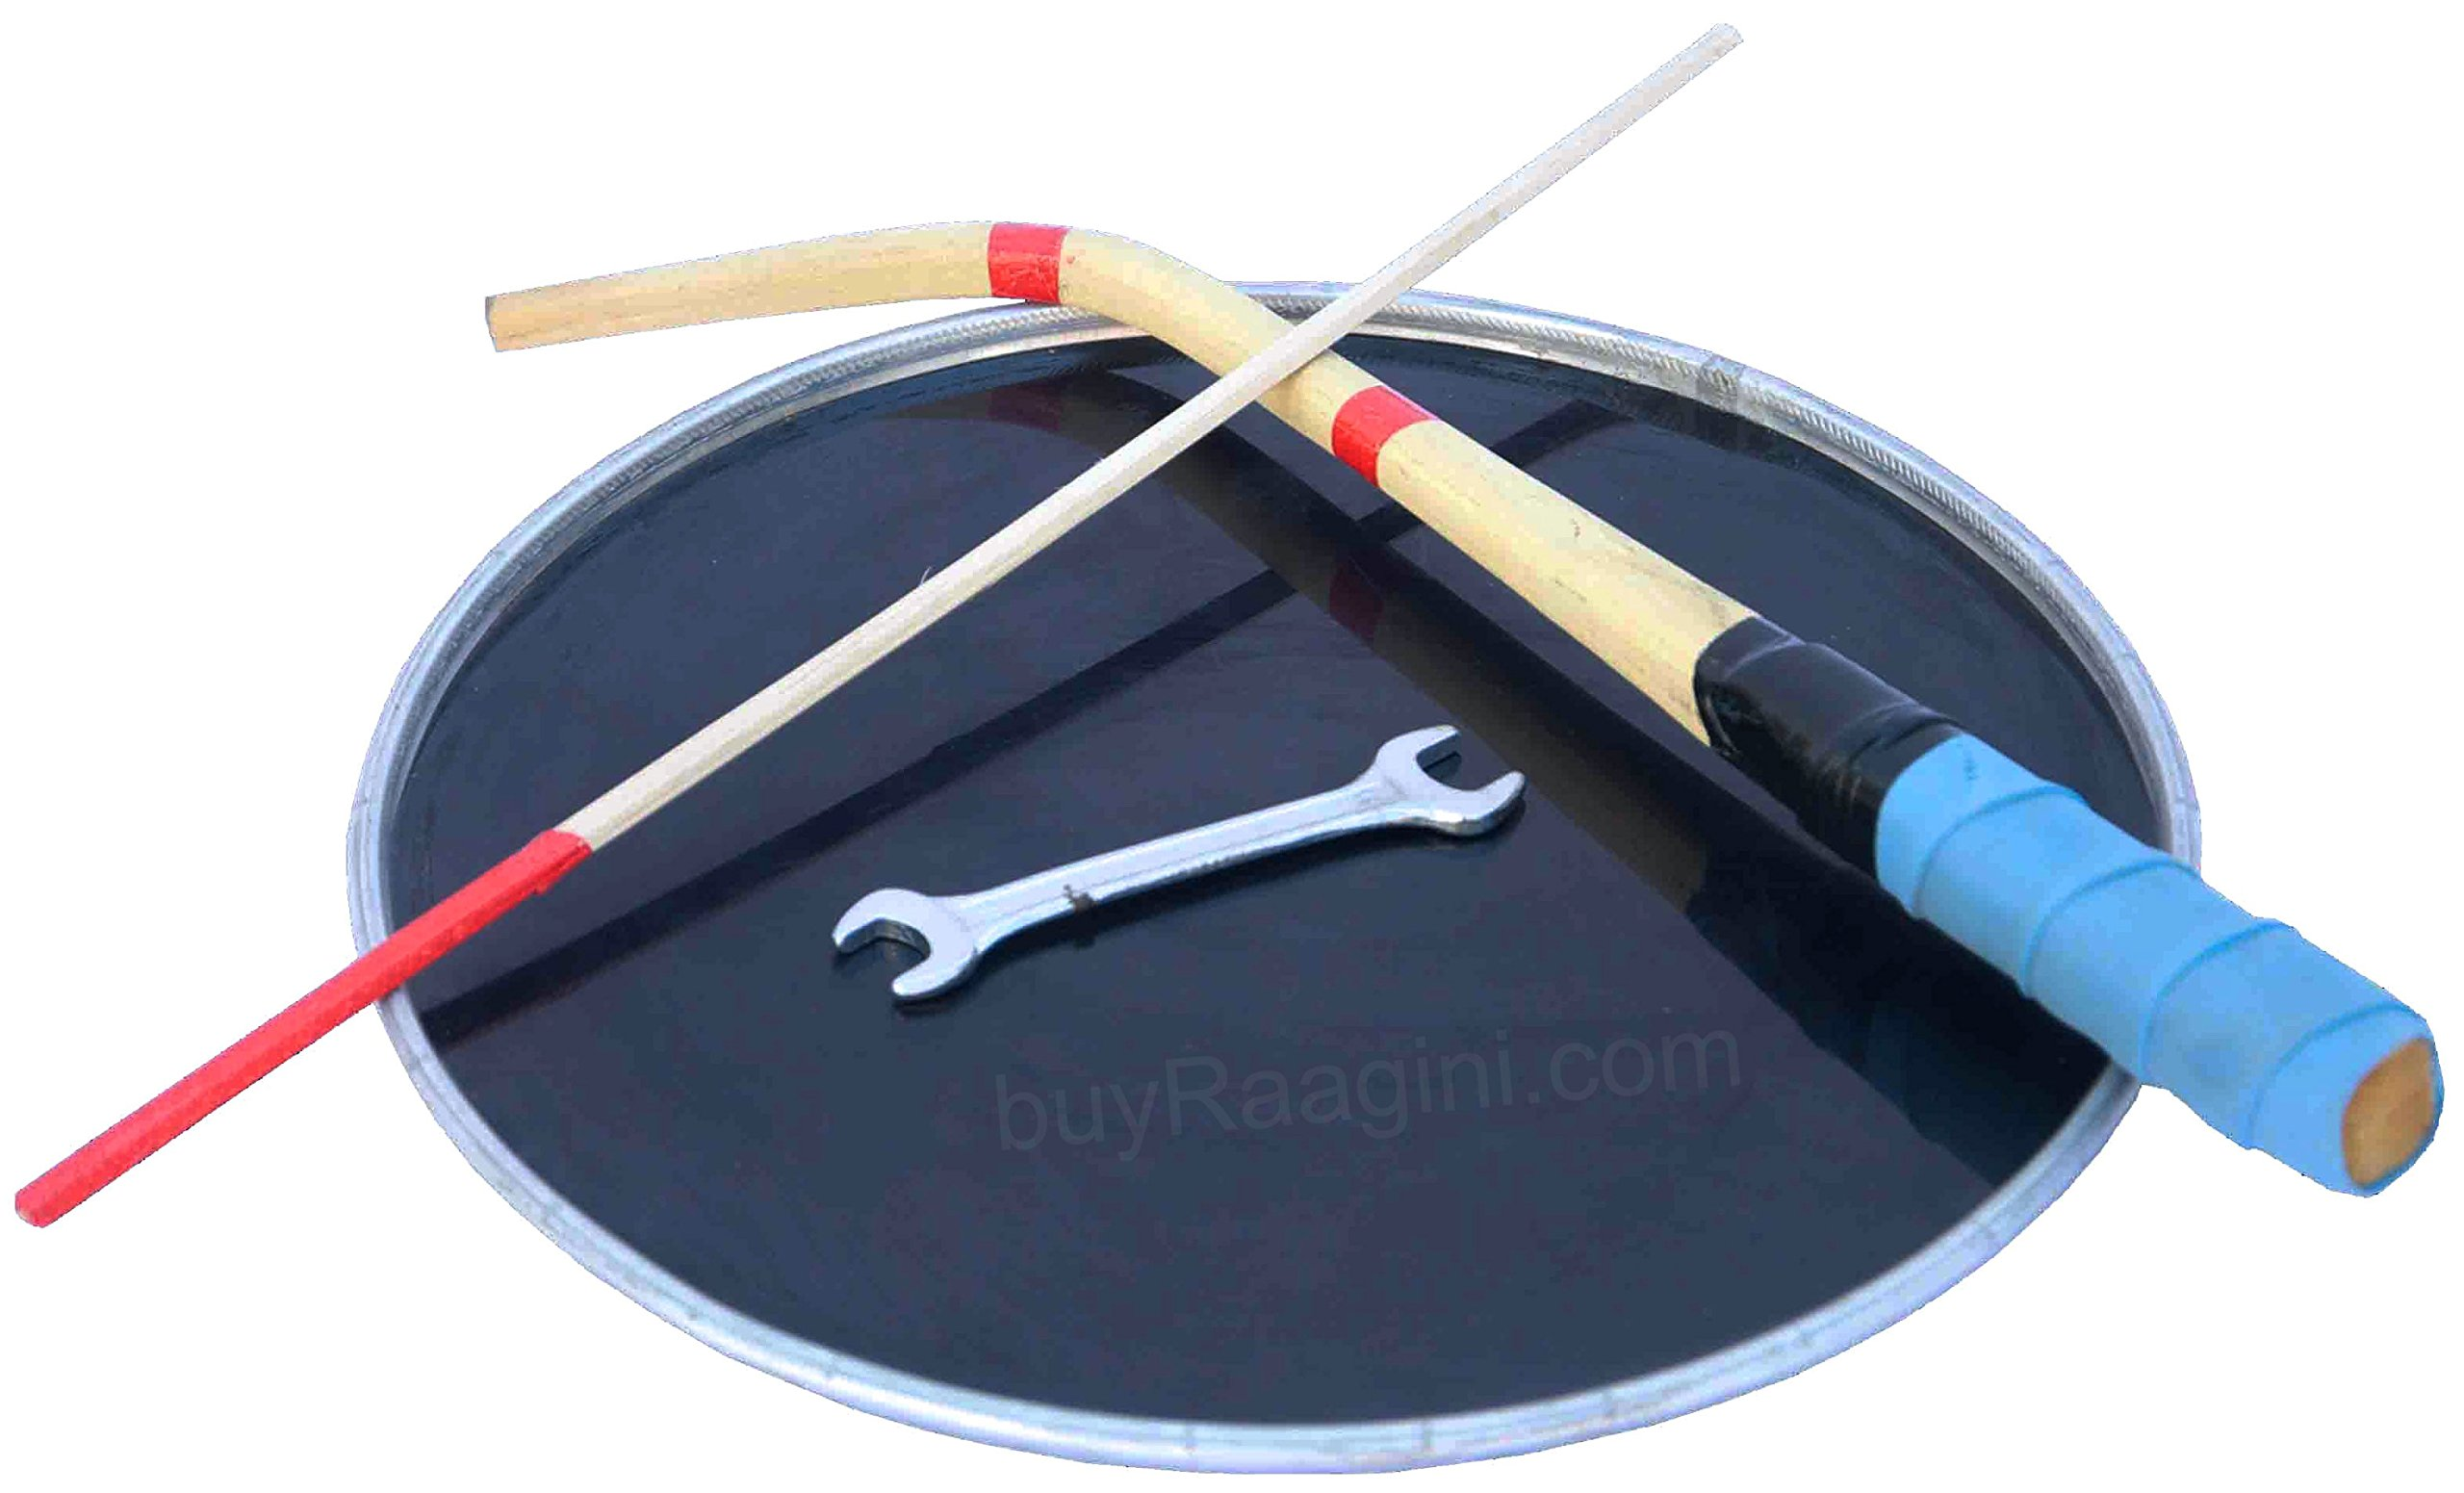 Maharaja Musicals Dhol Drum, Professional, Kachha Pakka Shesham Wood, Natural, Padded Bag, Beaters, Nylon Shoulder Strap, Punjabi Bhangra Dhol Instrument (PDI-DCE)